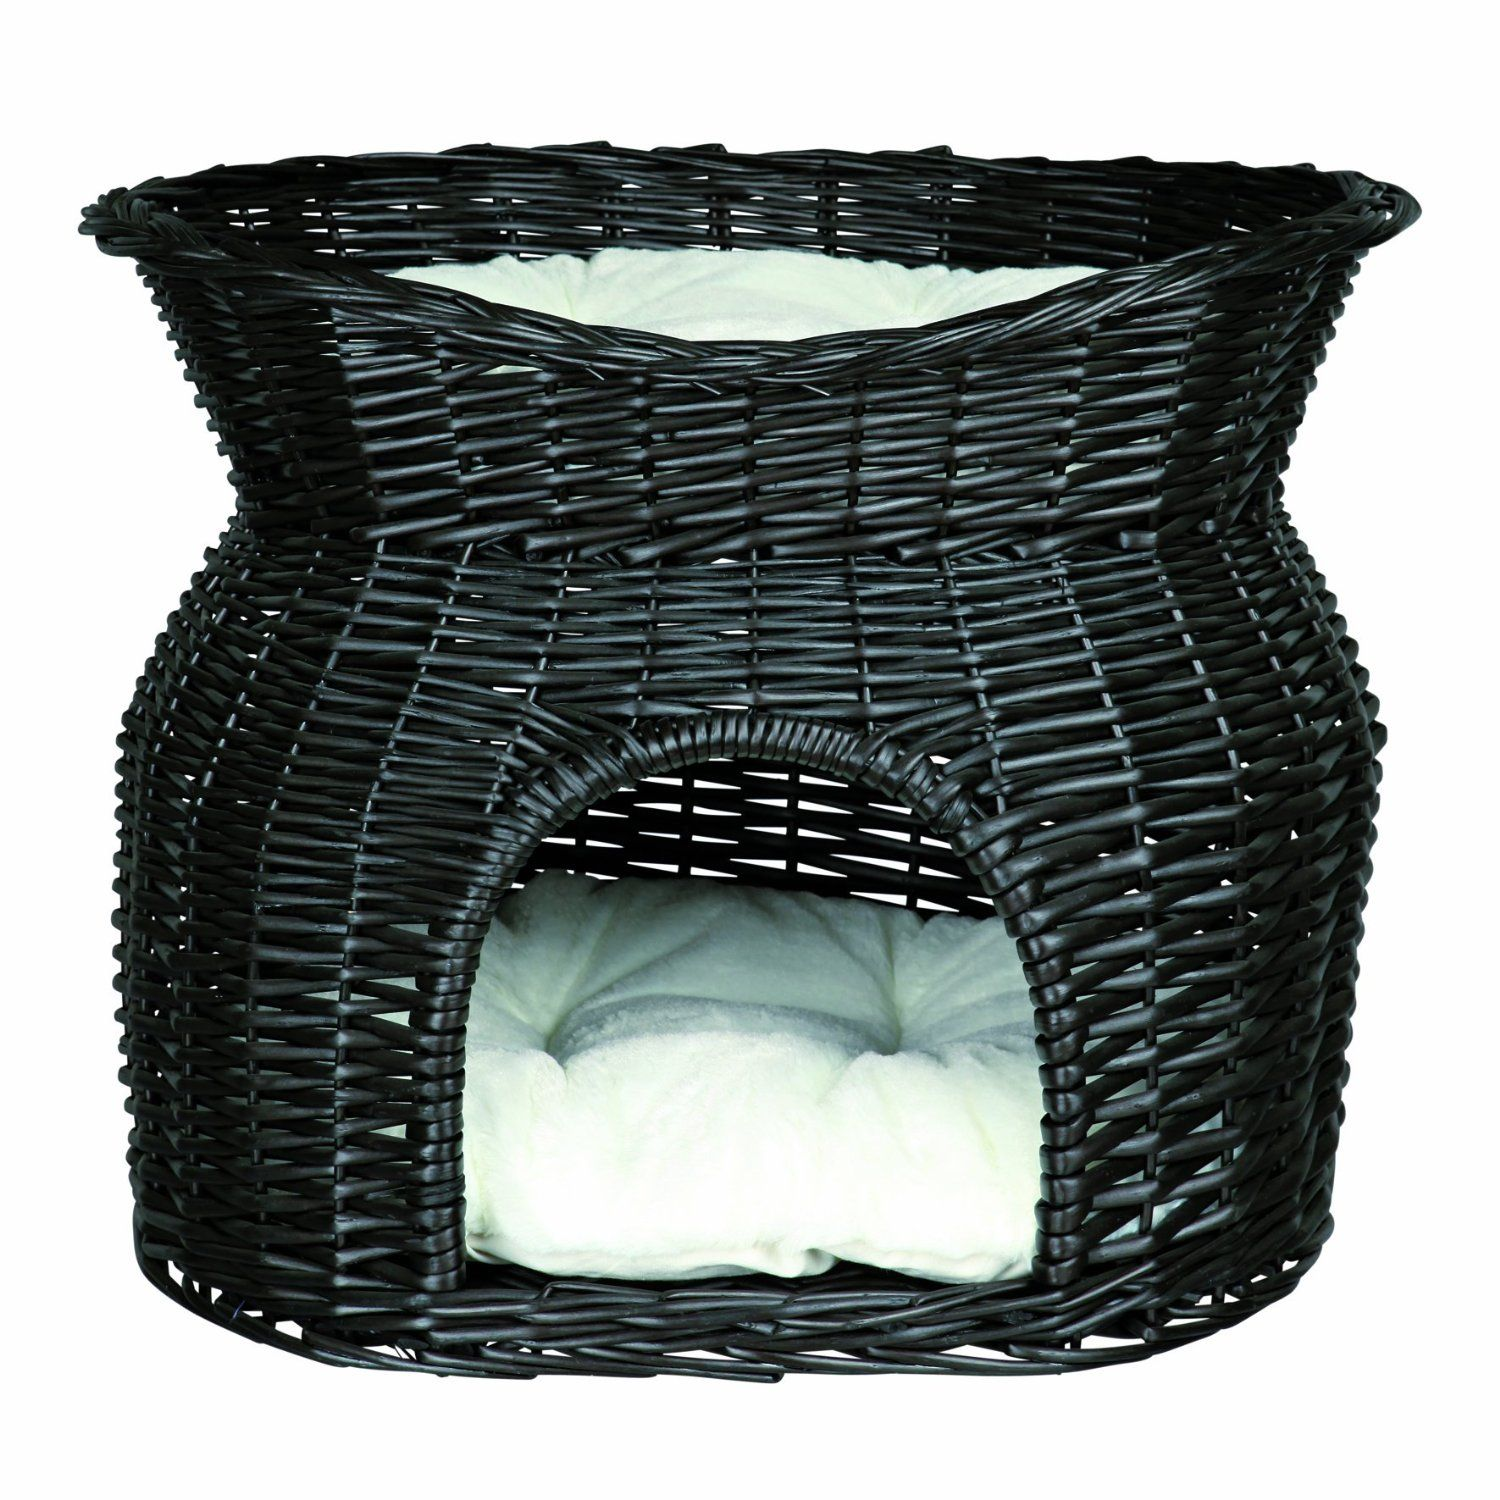 Black wicker cave with bed measures 54 cm x 43 cm x 37 cm